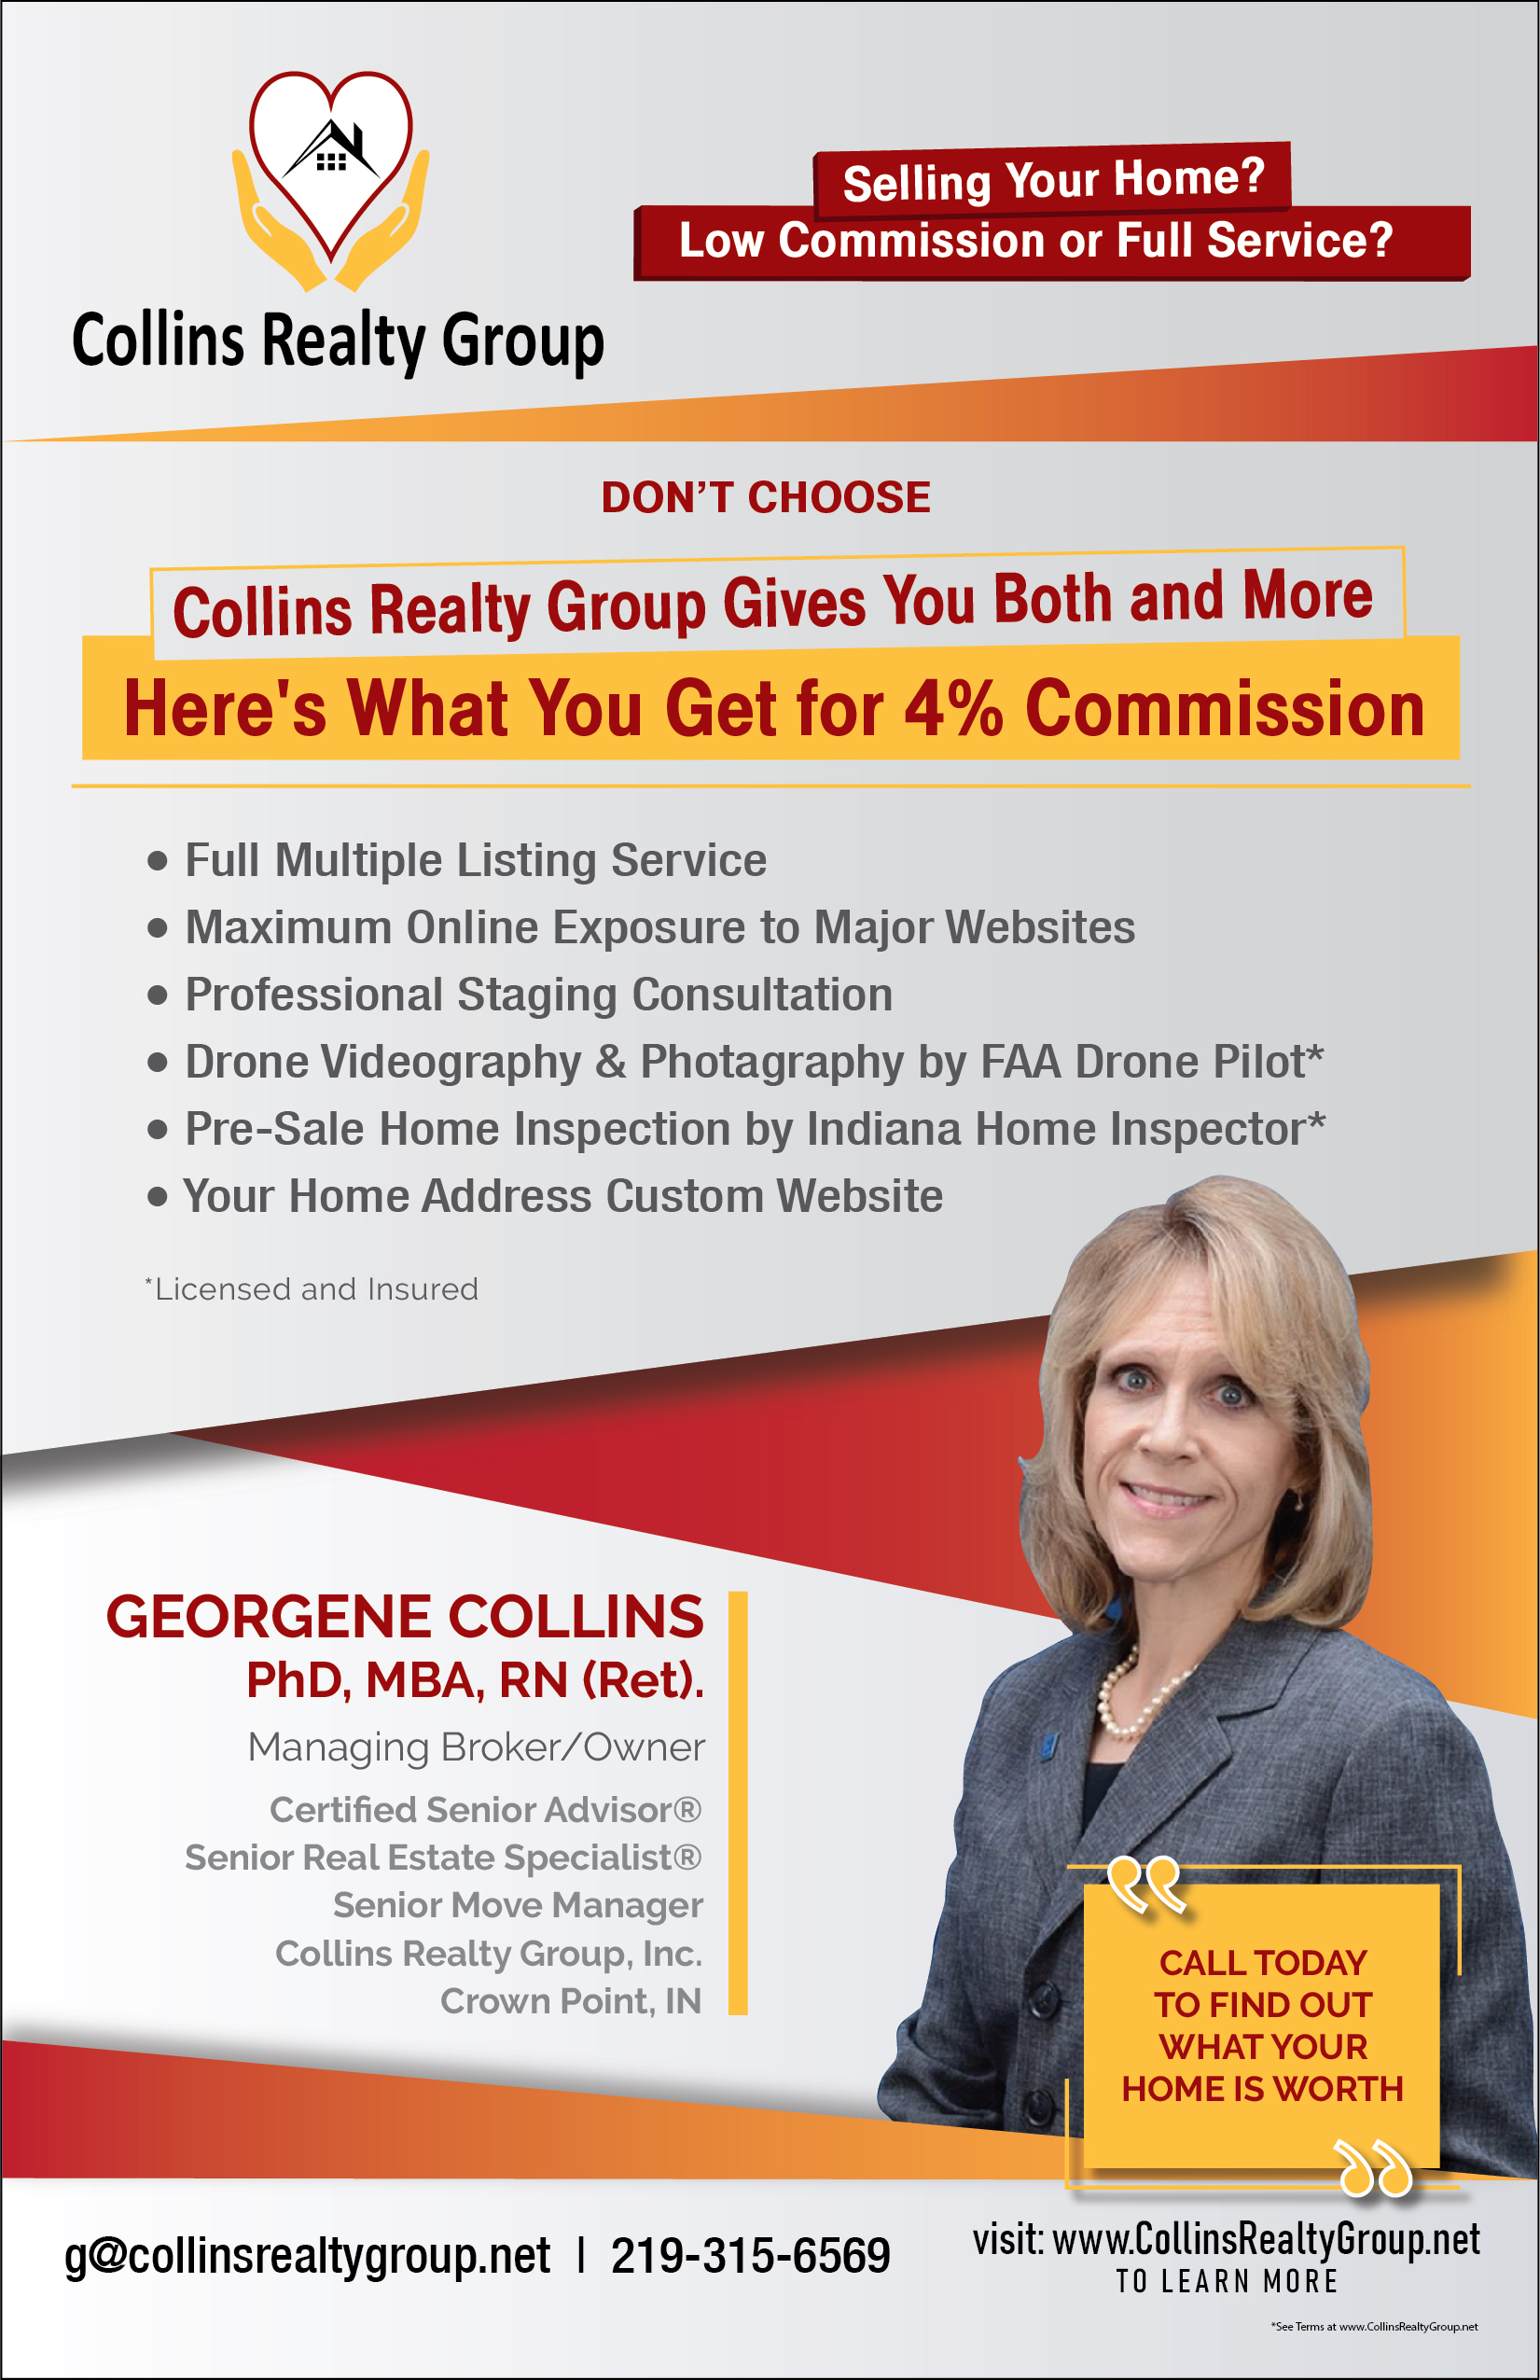 Collins Realty Group, Inc. Ad Image